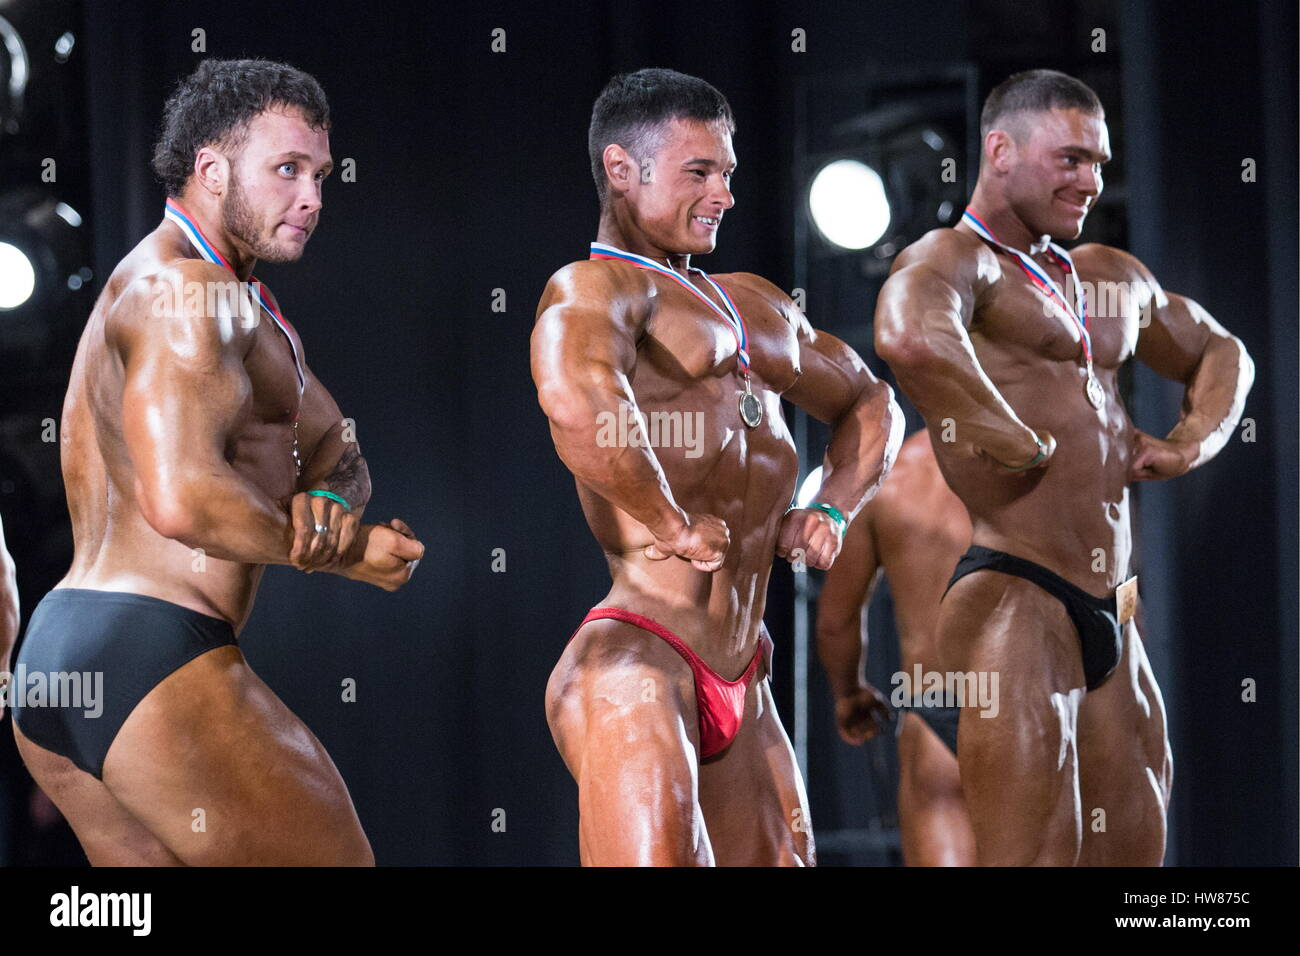 Omsk Russia 18th Mar 2017 Contestants Pose During The Regional Stock Photo Alamy